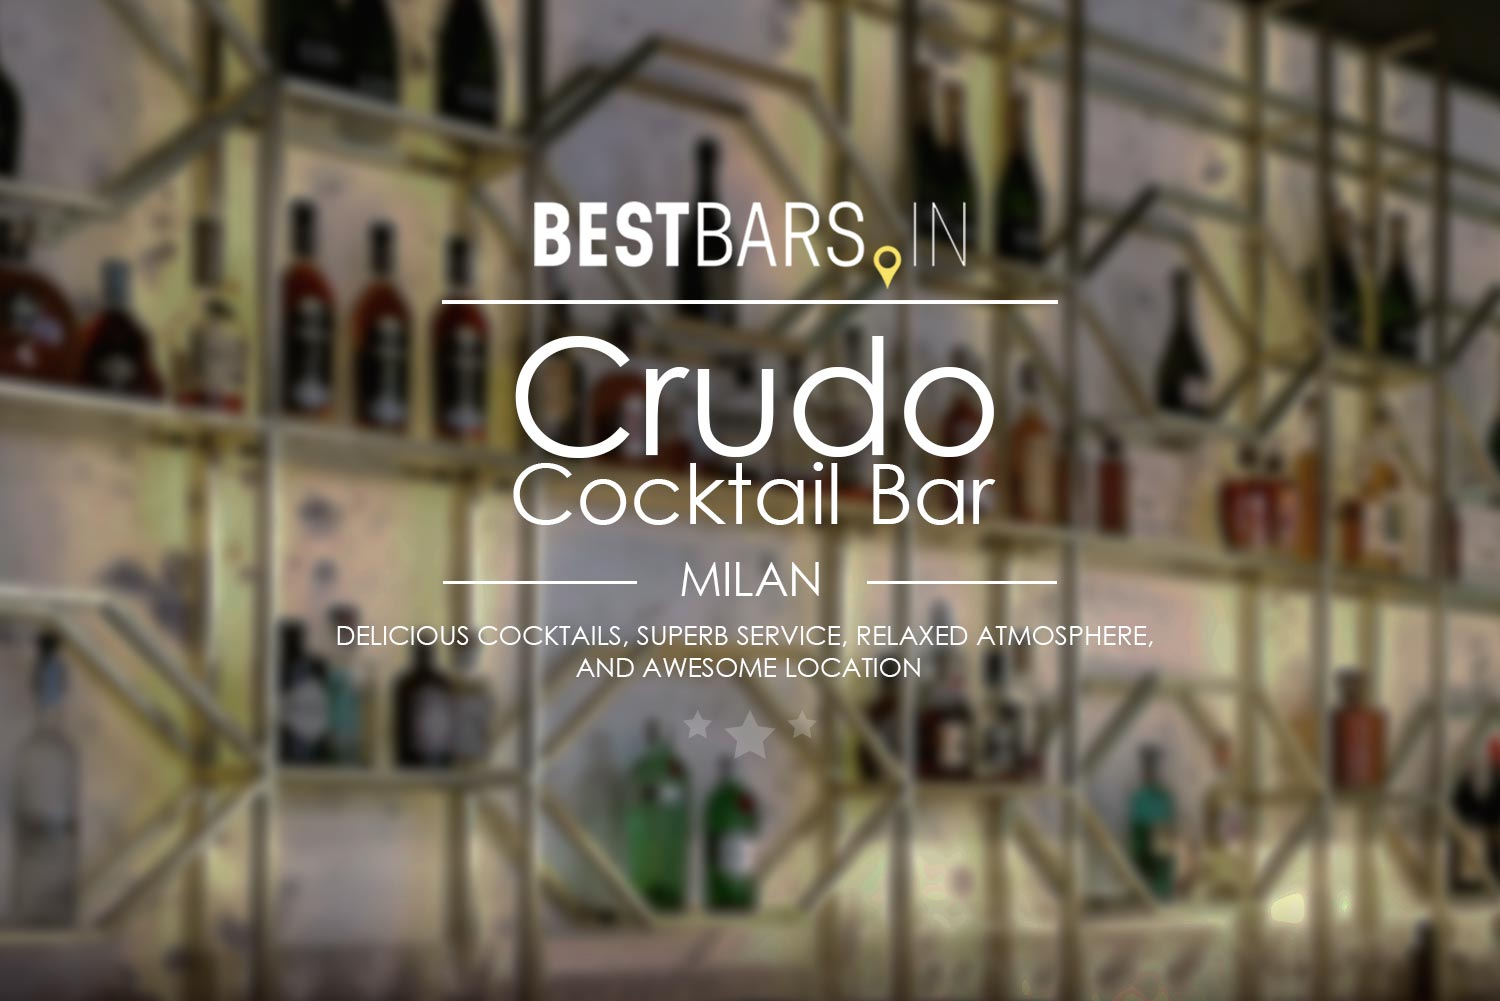 Crudo Cocktail Bar is a new trendy cocktail lounge in one of the coolest neighbourhoods of Milan